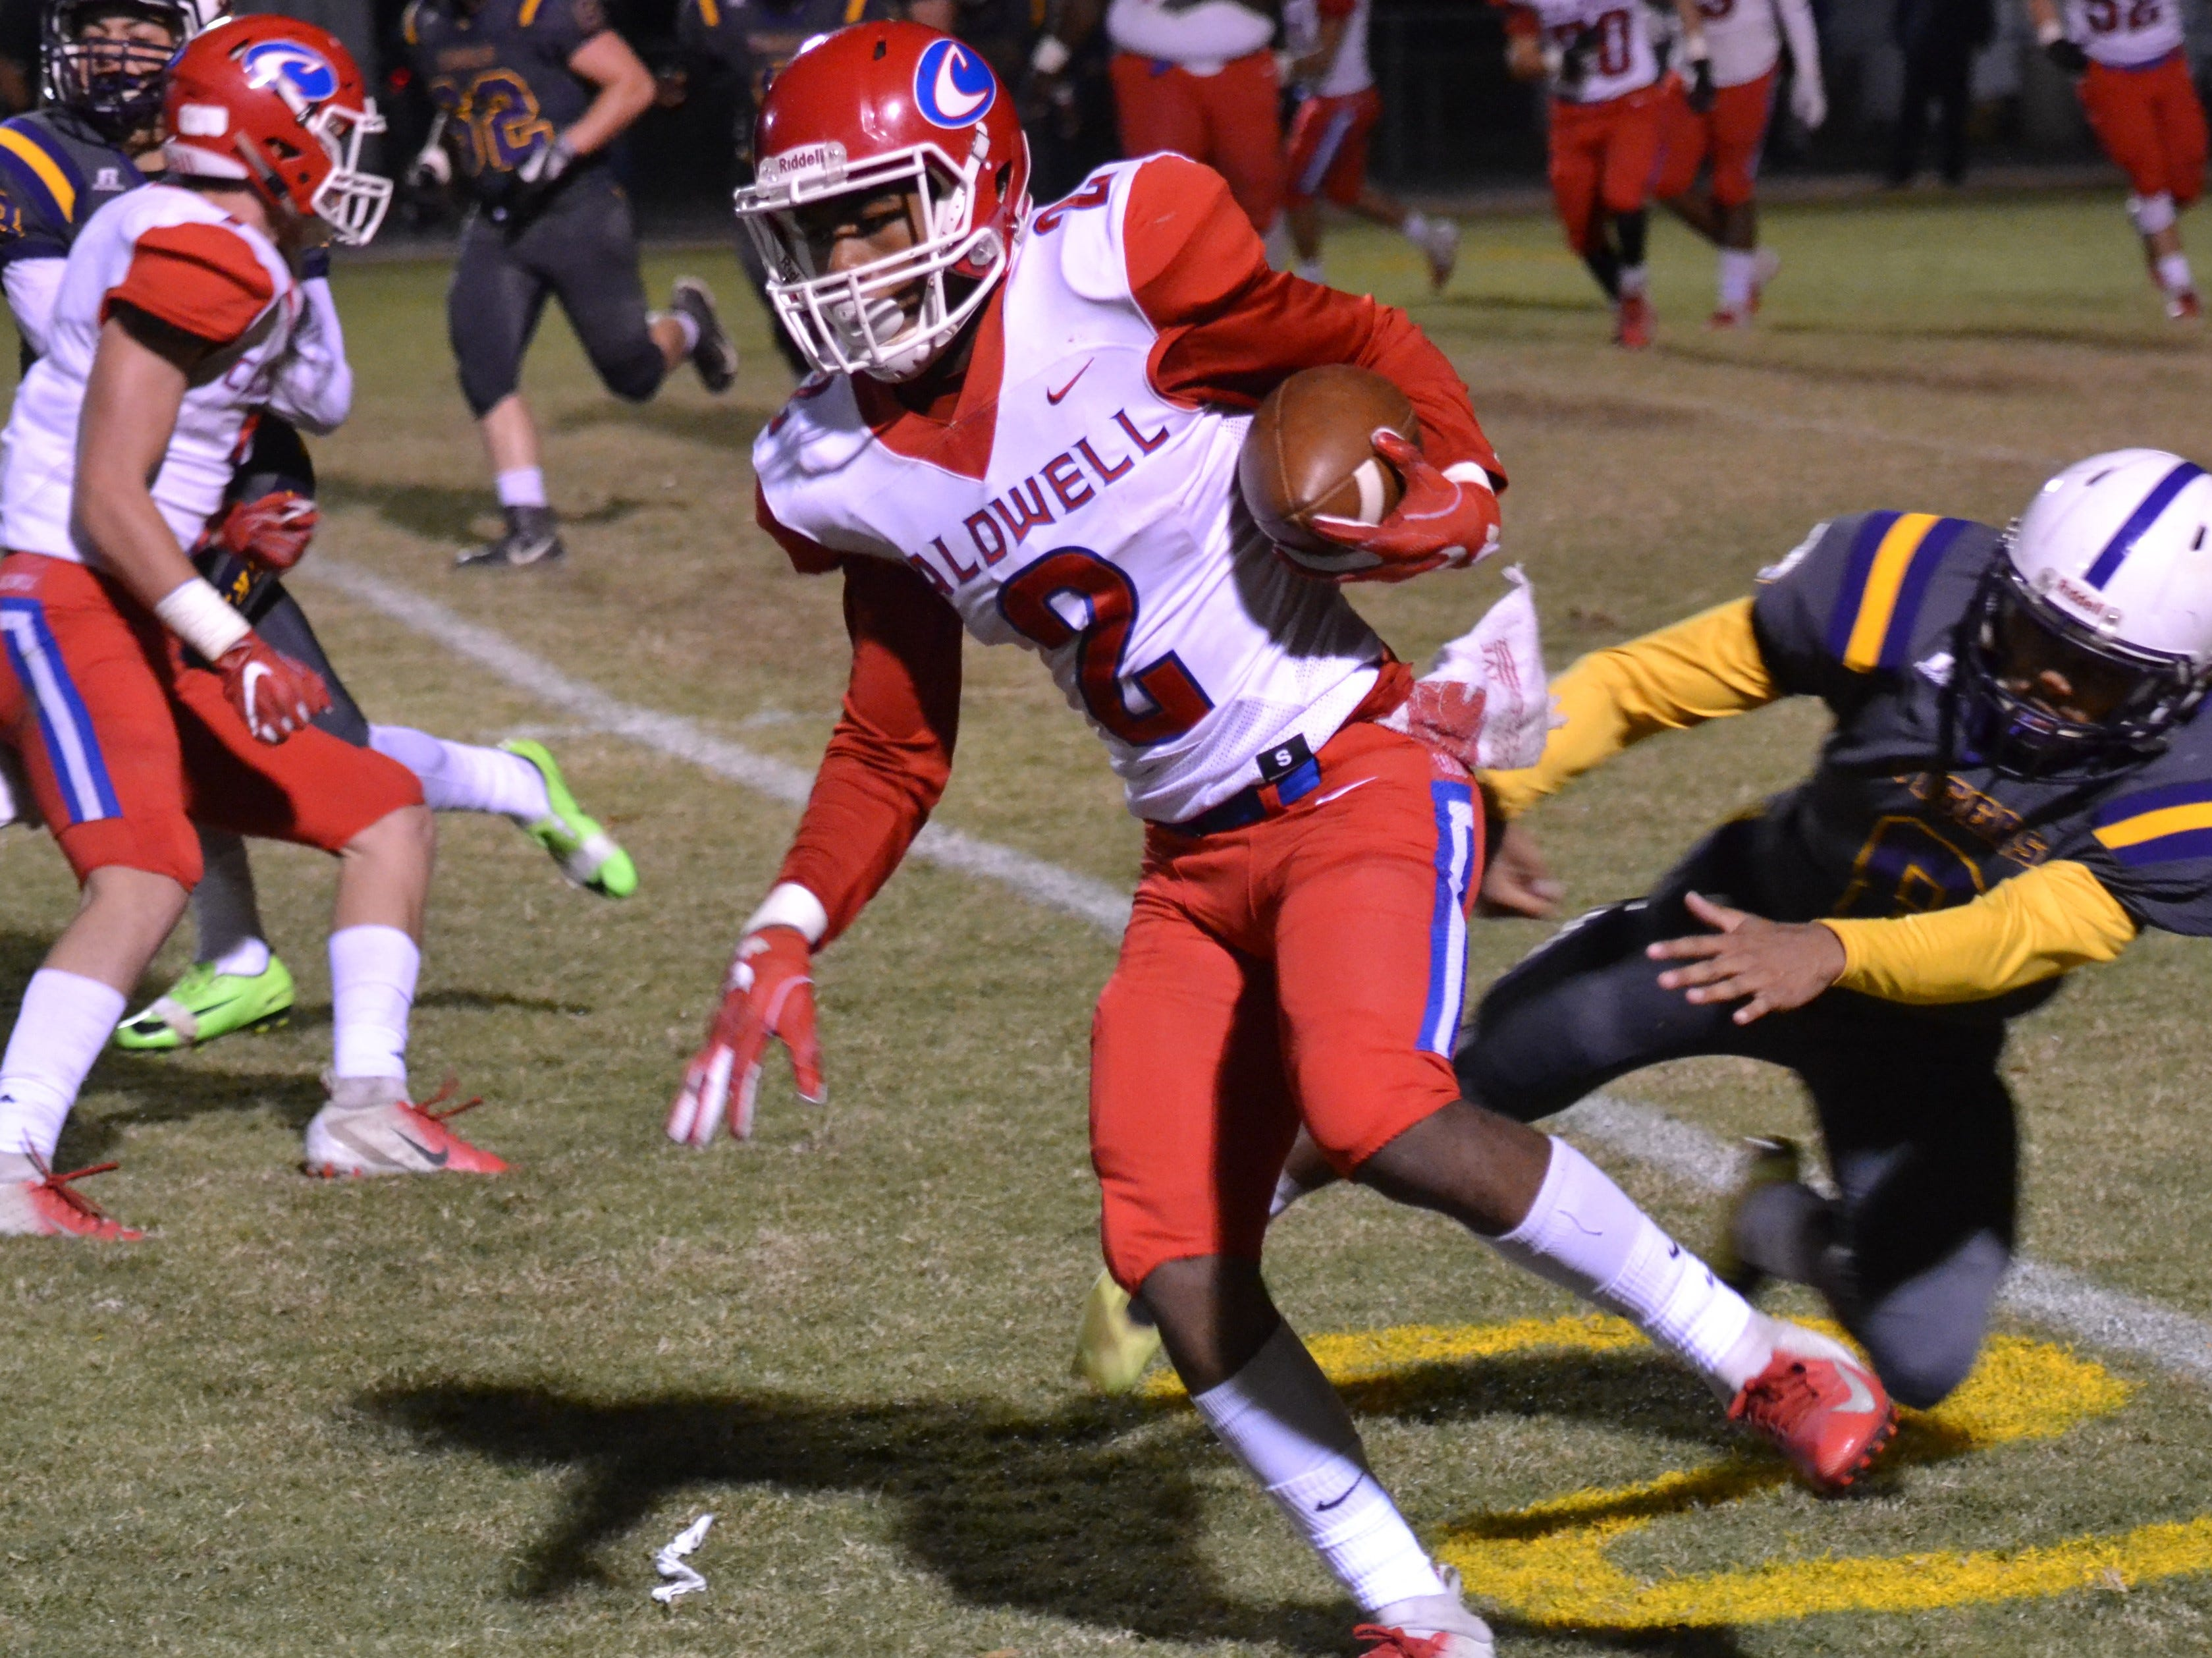 Caldwell's Tavius Bryant (2) turns the corner for a solid gain for the Spartans. Marksville and Caldwell met in the regular season finale Friday night with Caldwell edging Marksville 13-8.